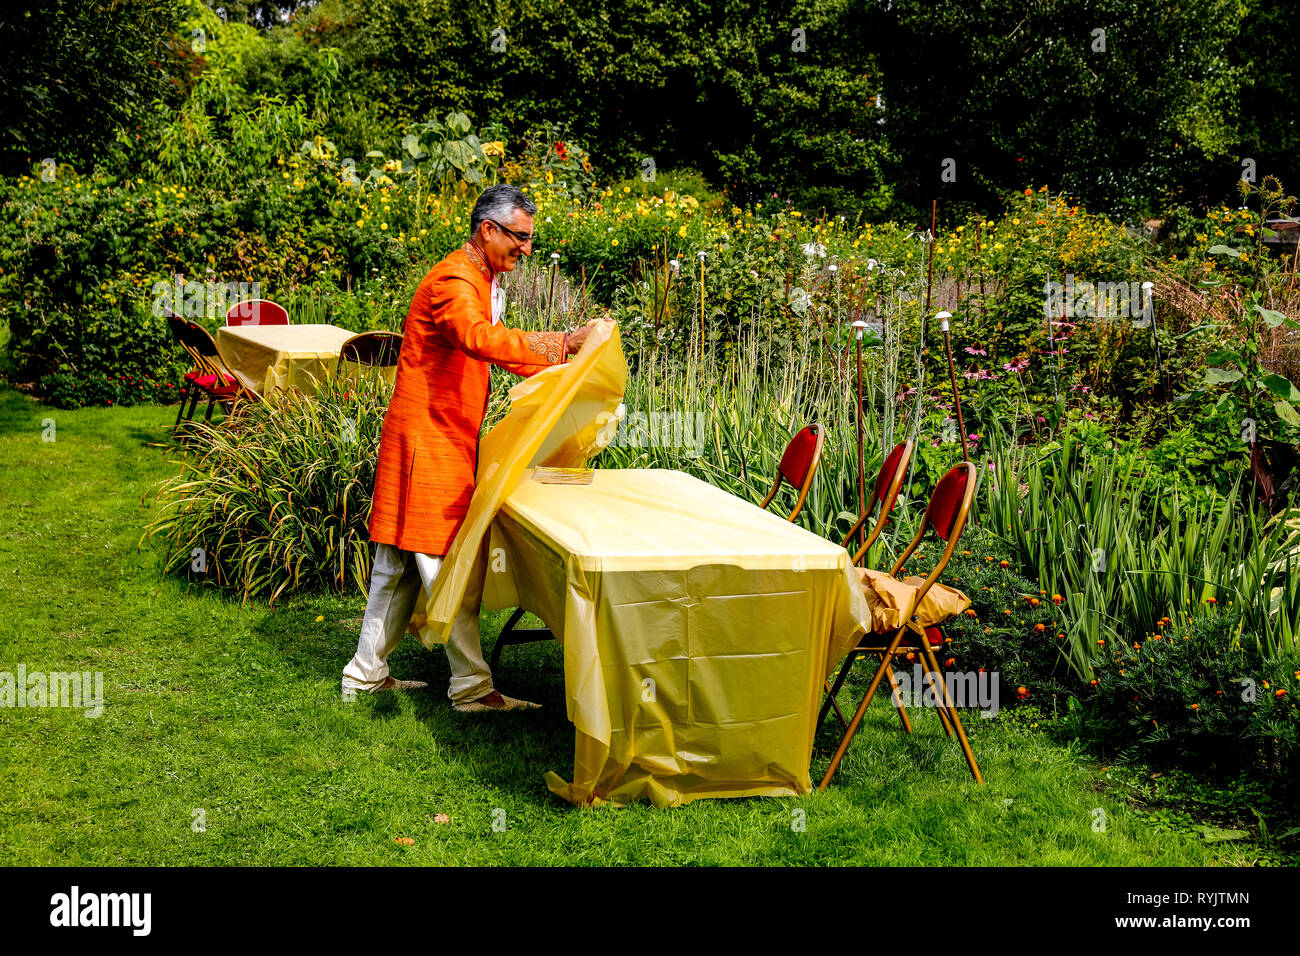 Volunteer laying a table for guests in the flower garden at Bhaktivedanta manor during Janmashtami hindu festival, Watford, U.K. - Stock Image